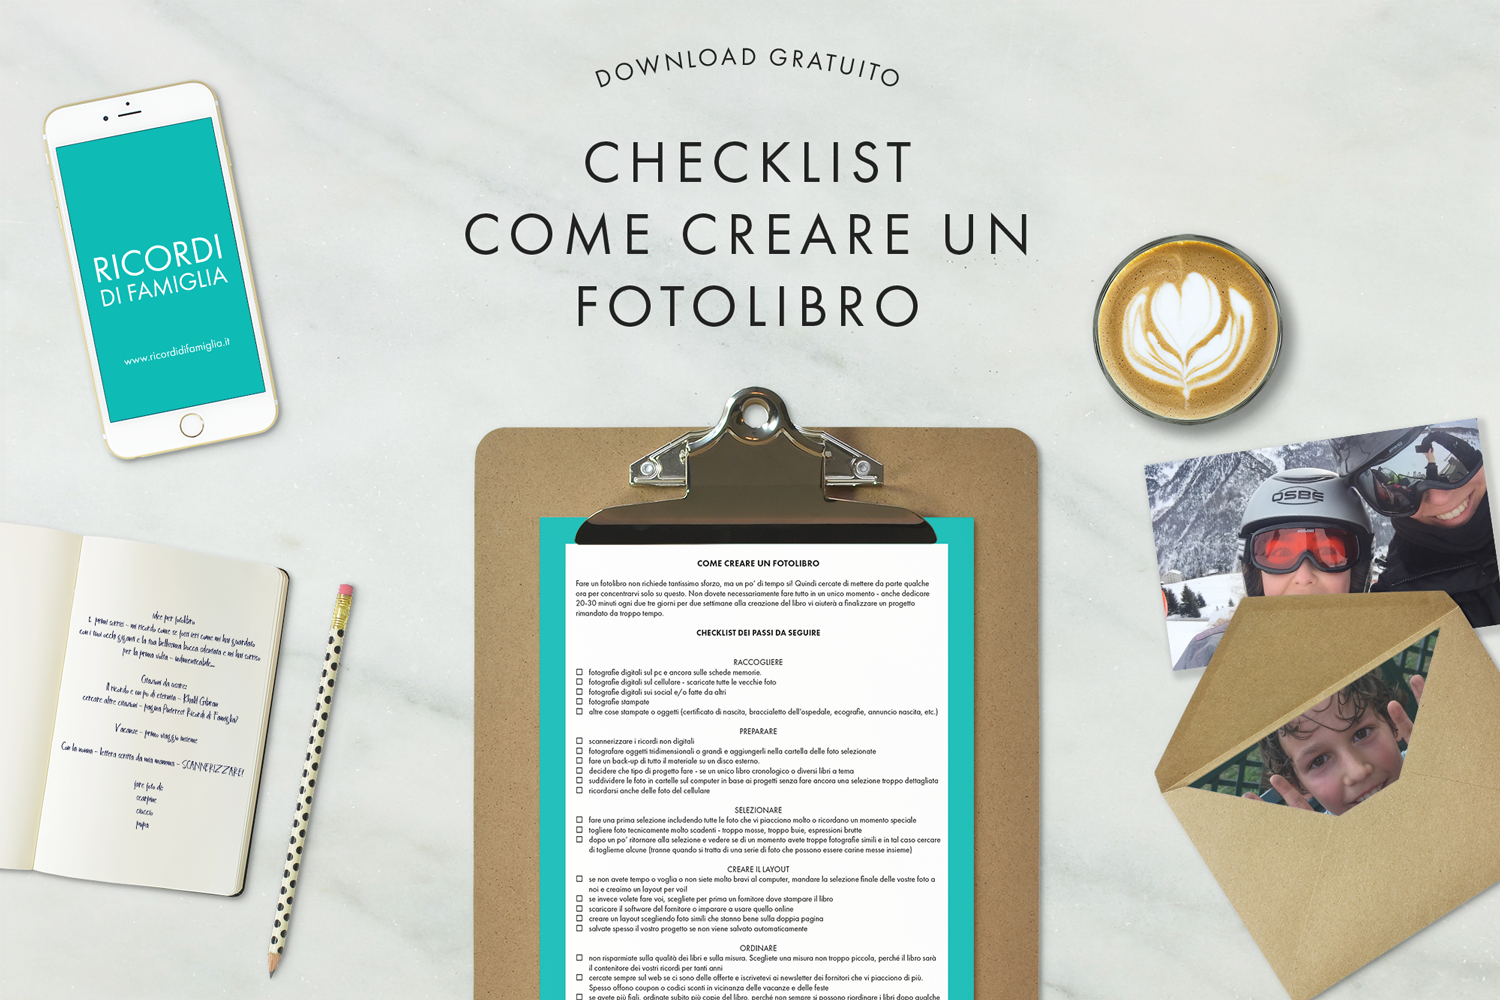 creare un fotolibro checklist download gratuito